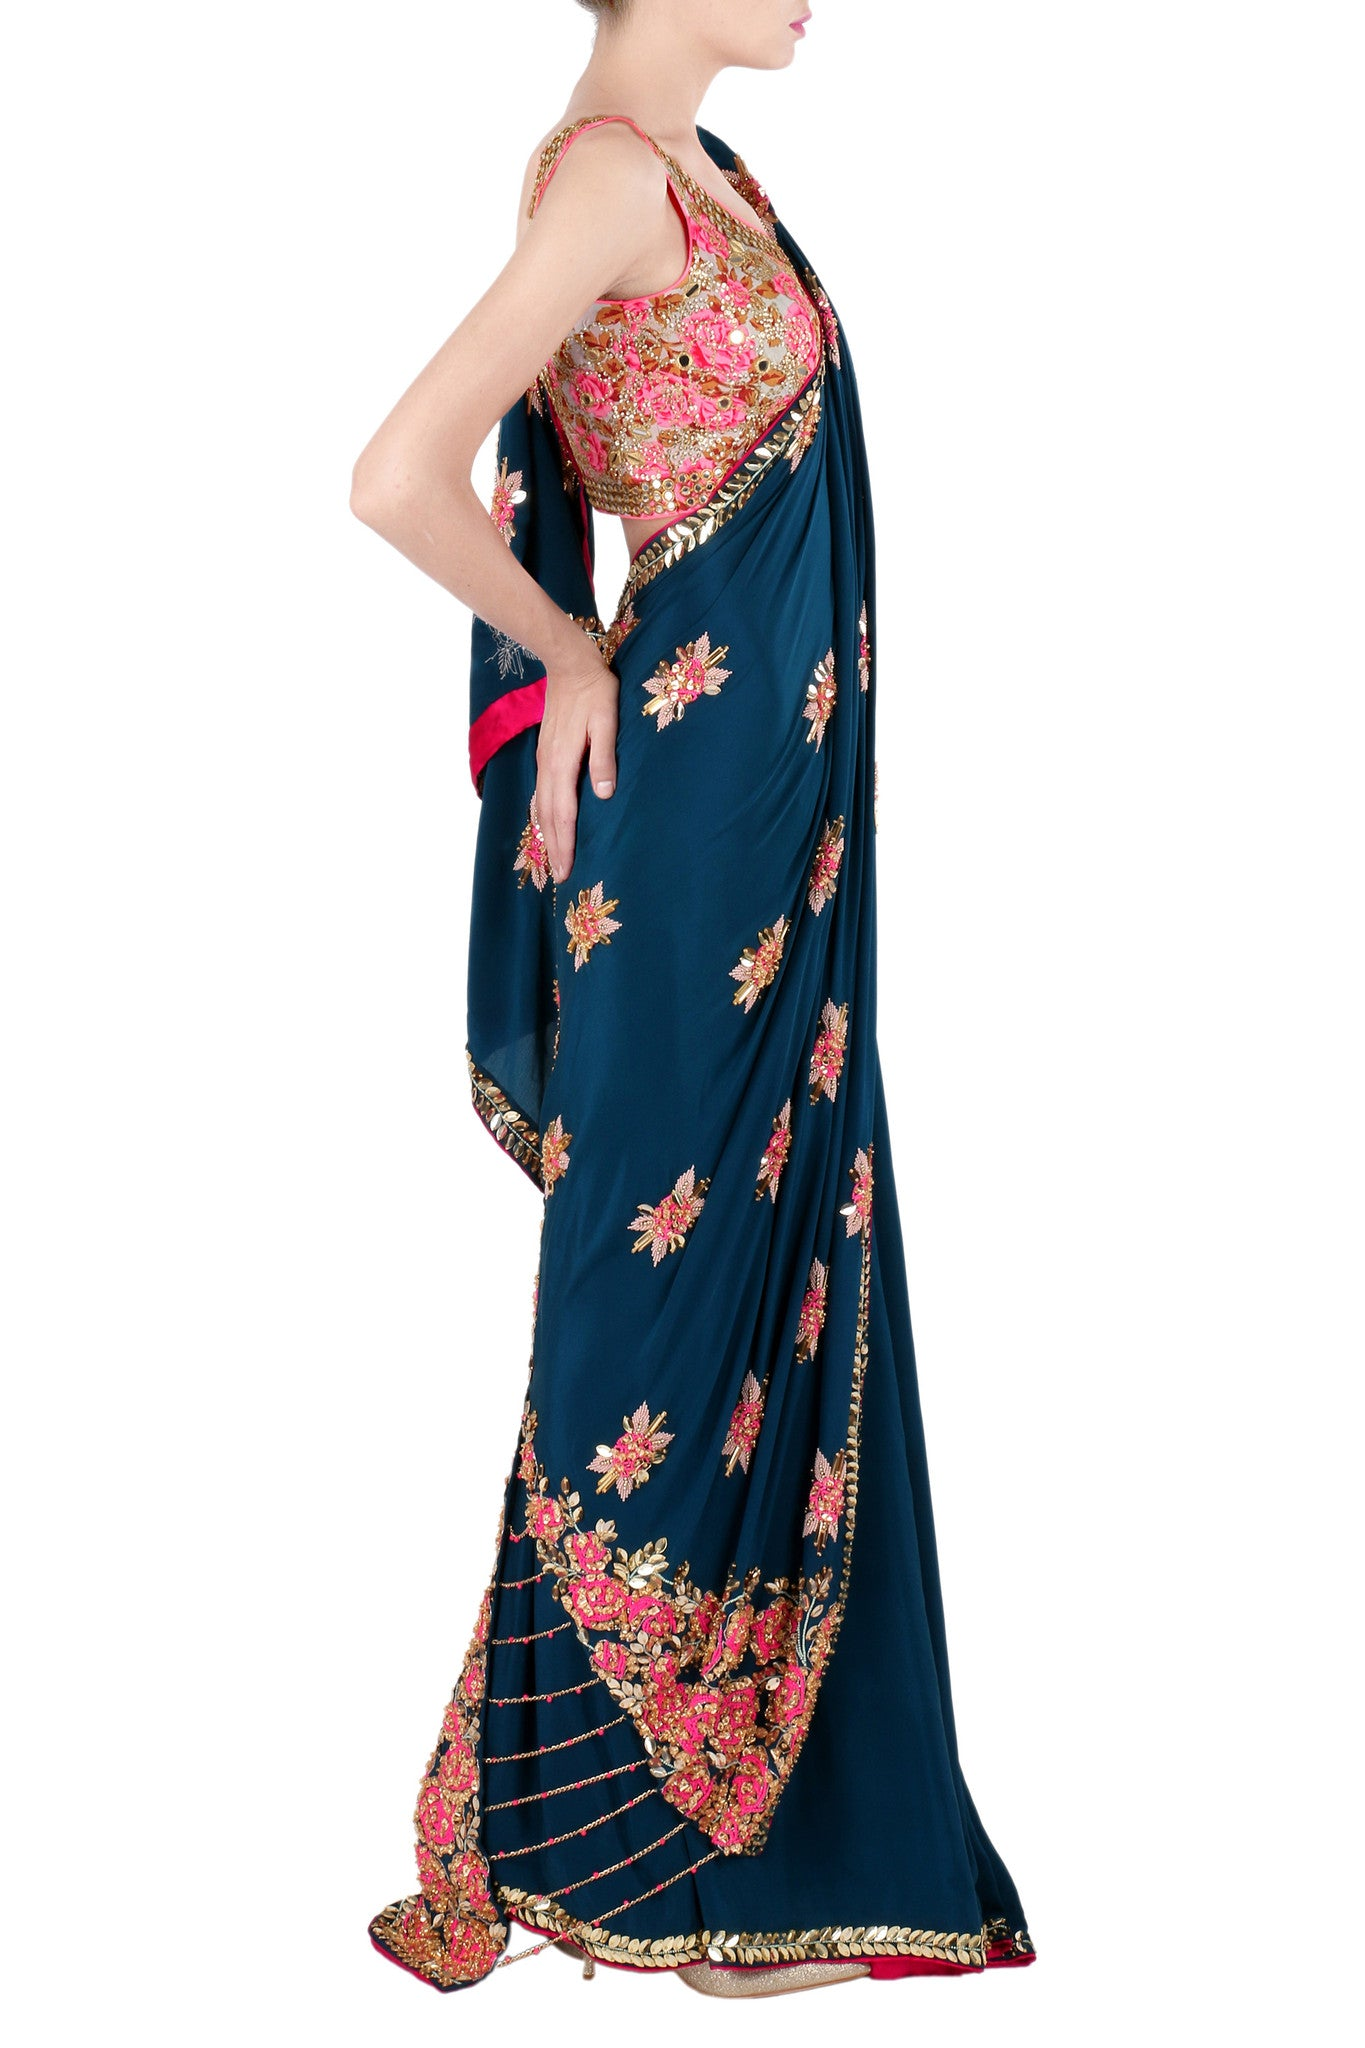 Sapphire Blue Crepe Saree with Rose Motifs Side